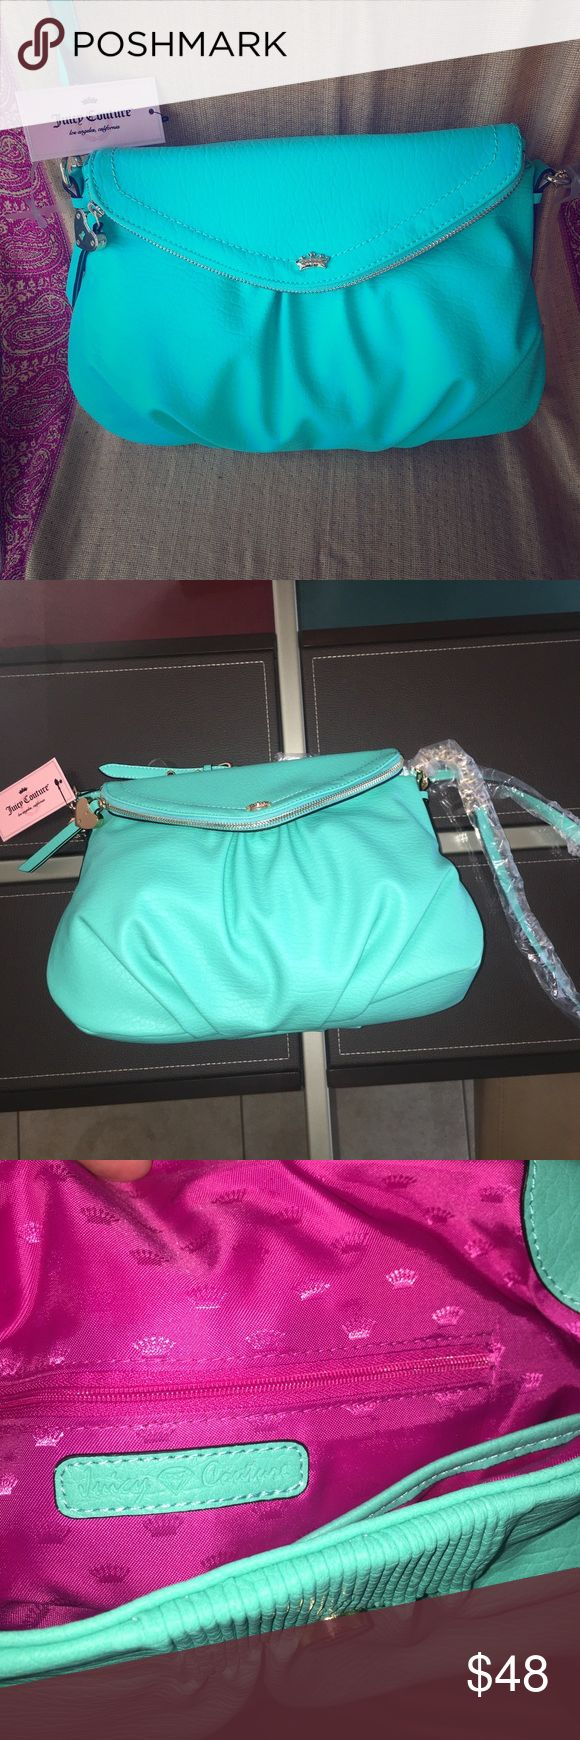 Juicy Couture Purse  Listing Gorgeous Juicy Couture Purse NWT Spectacular color, bright hot pink inside. Multiple compartments. Approximately 46 inch adjustable drop on strap.  Bundle and Save  Please feel free to ask me any questions  Reasonable offers welcomed Juicy Couture Bags